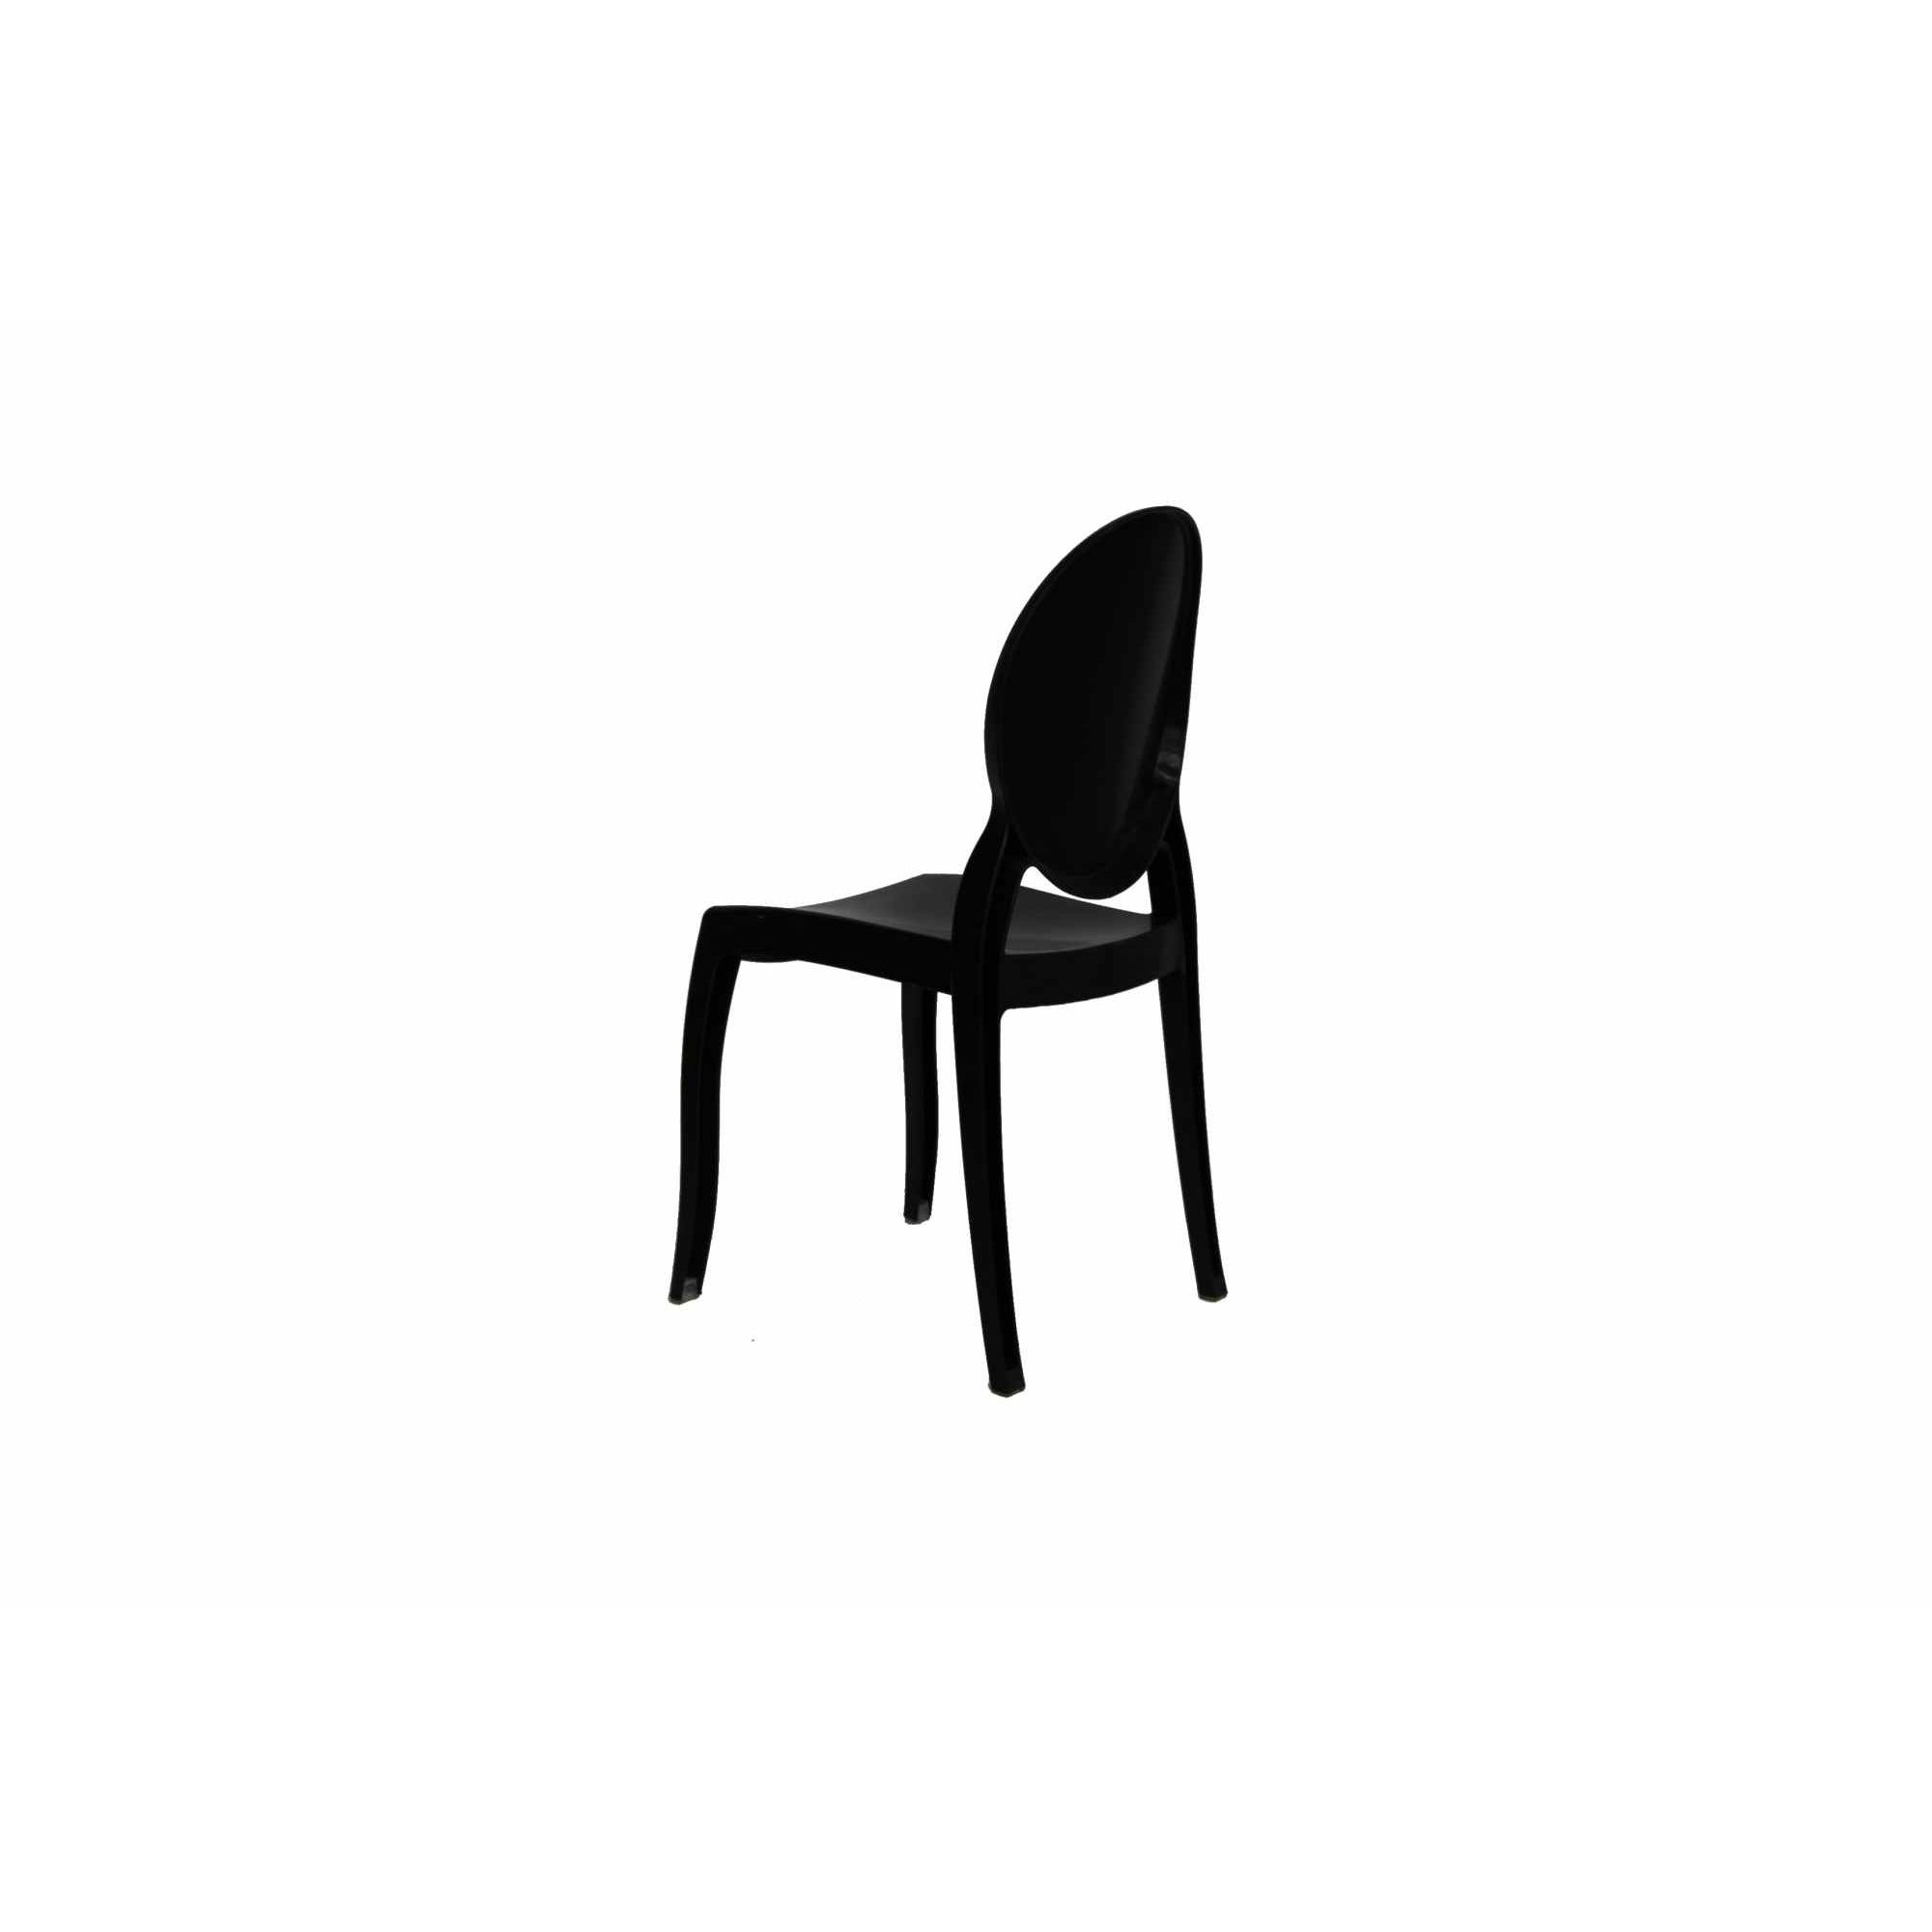 deco in paris lot de 4 chaises noir en polycarbonate tolga tolga noirx4. Black Bedroom Furniture Sets. Home Design Ideas